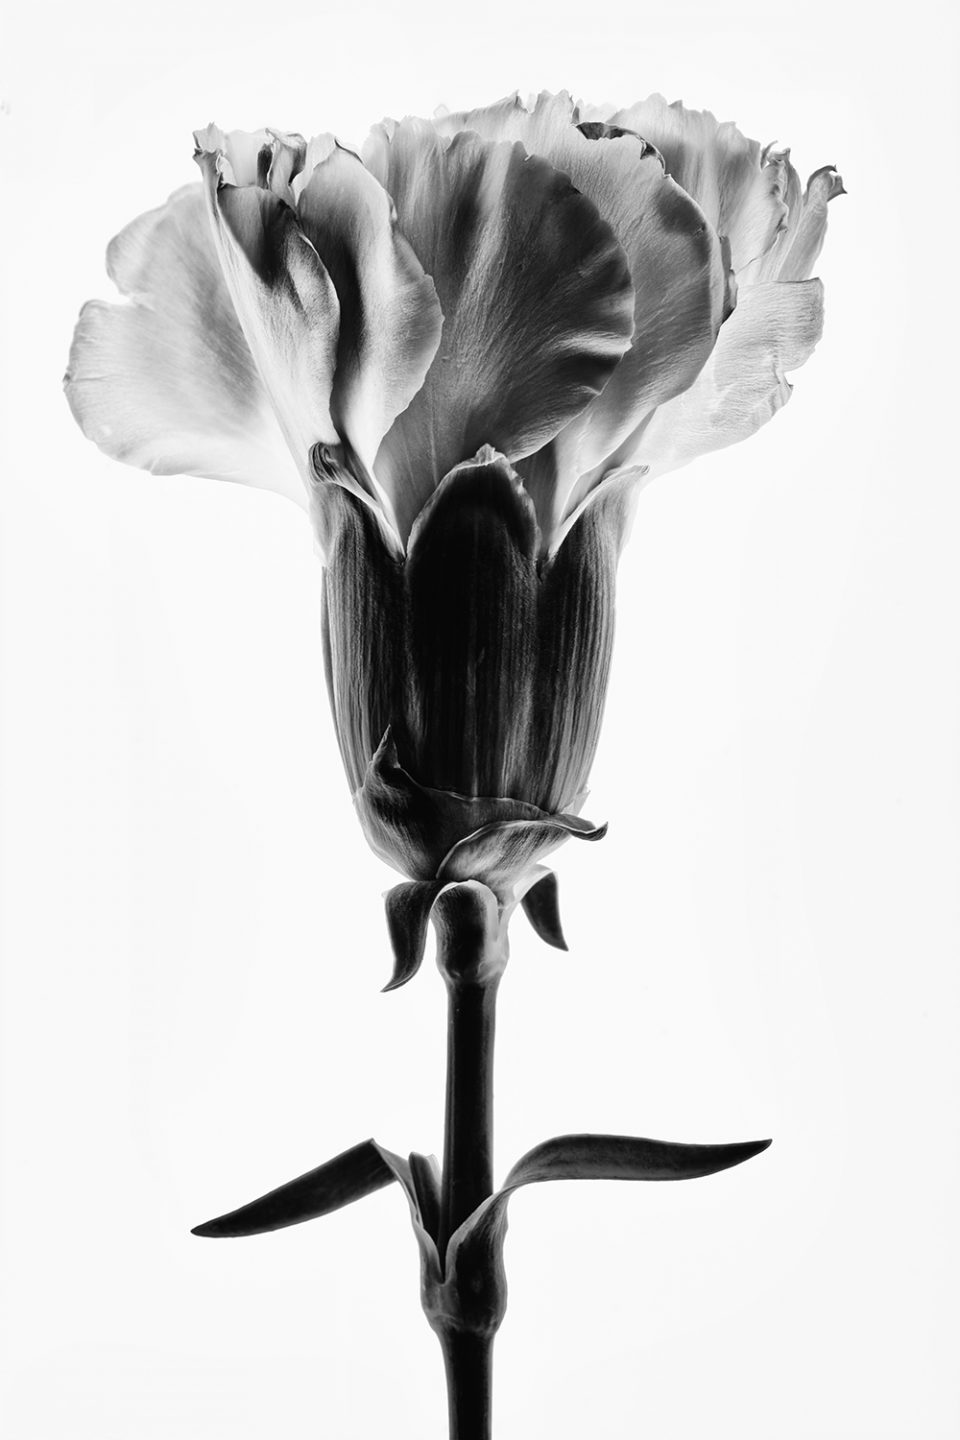 Flower Bloom Illuminated. Black and White Photograph by Keith Dotson.